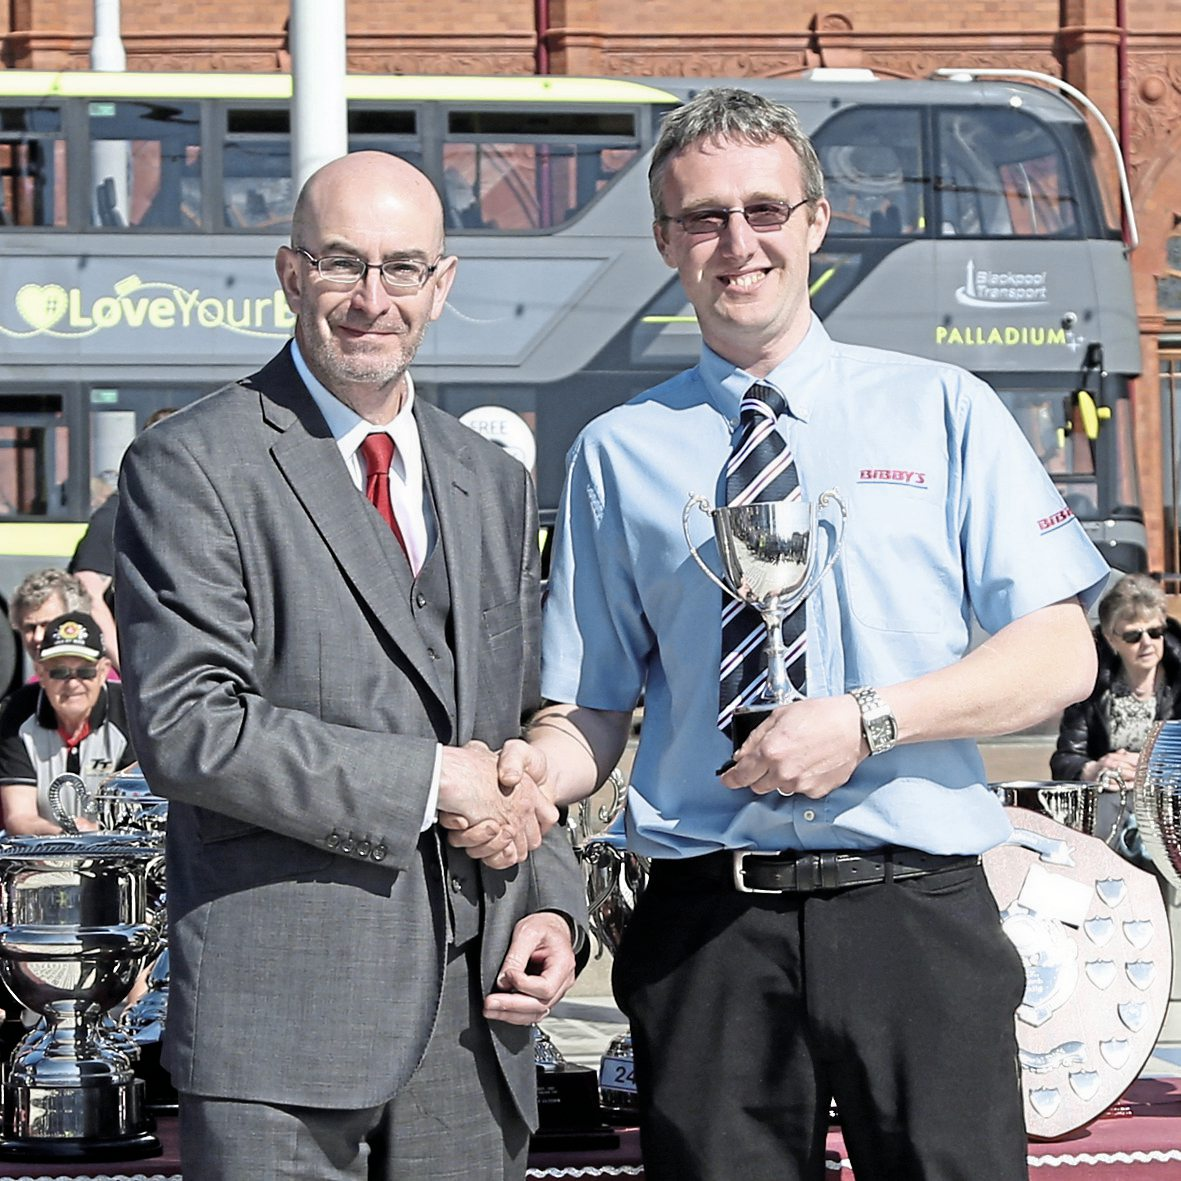 Kevin Rooney presents the top driving awards to Daryl Dixon (runner up to Coach Driver of the Year